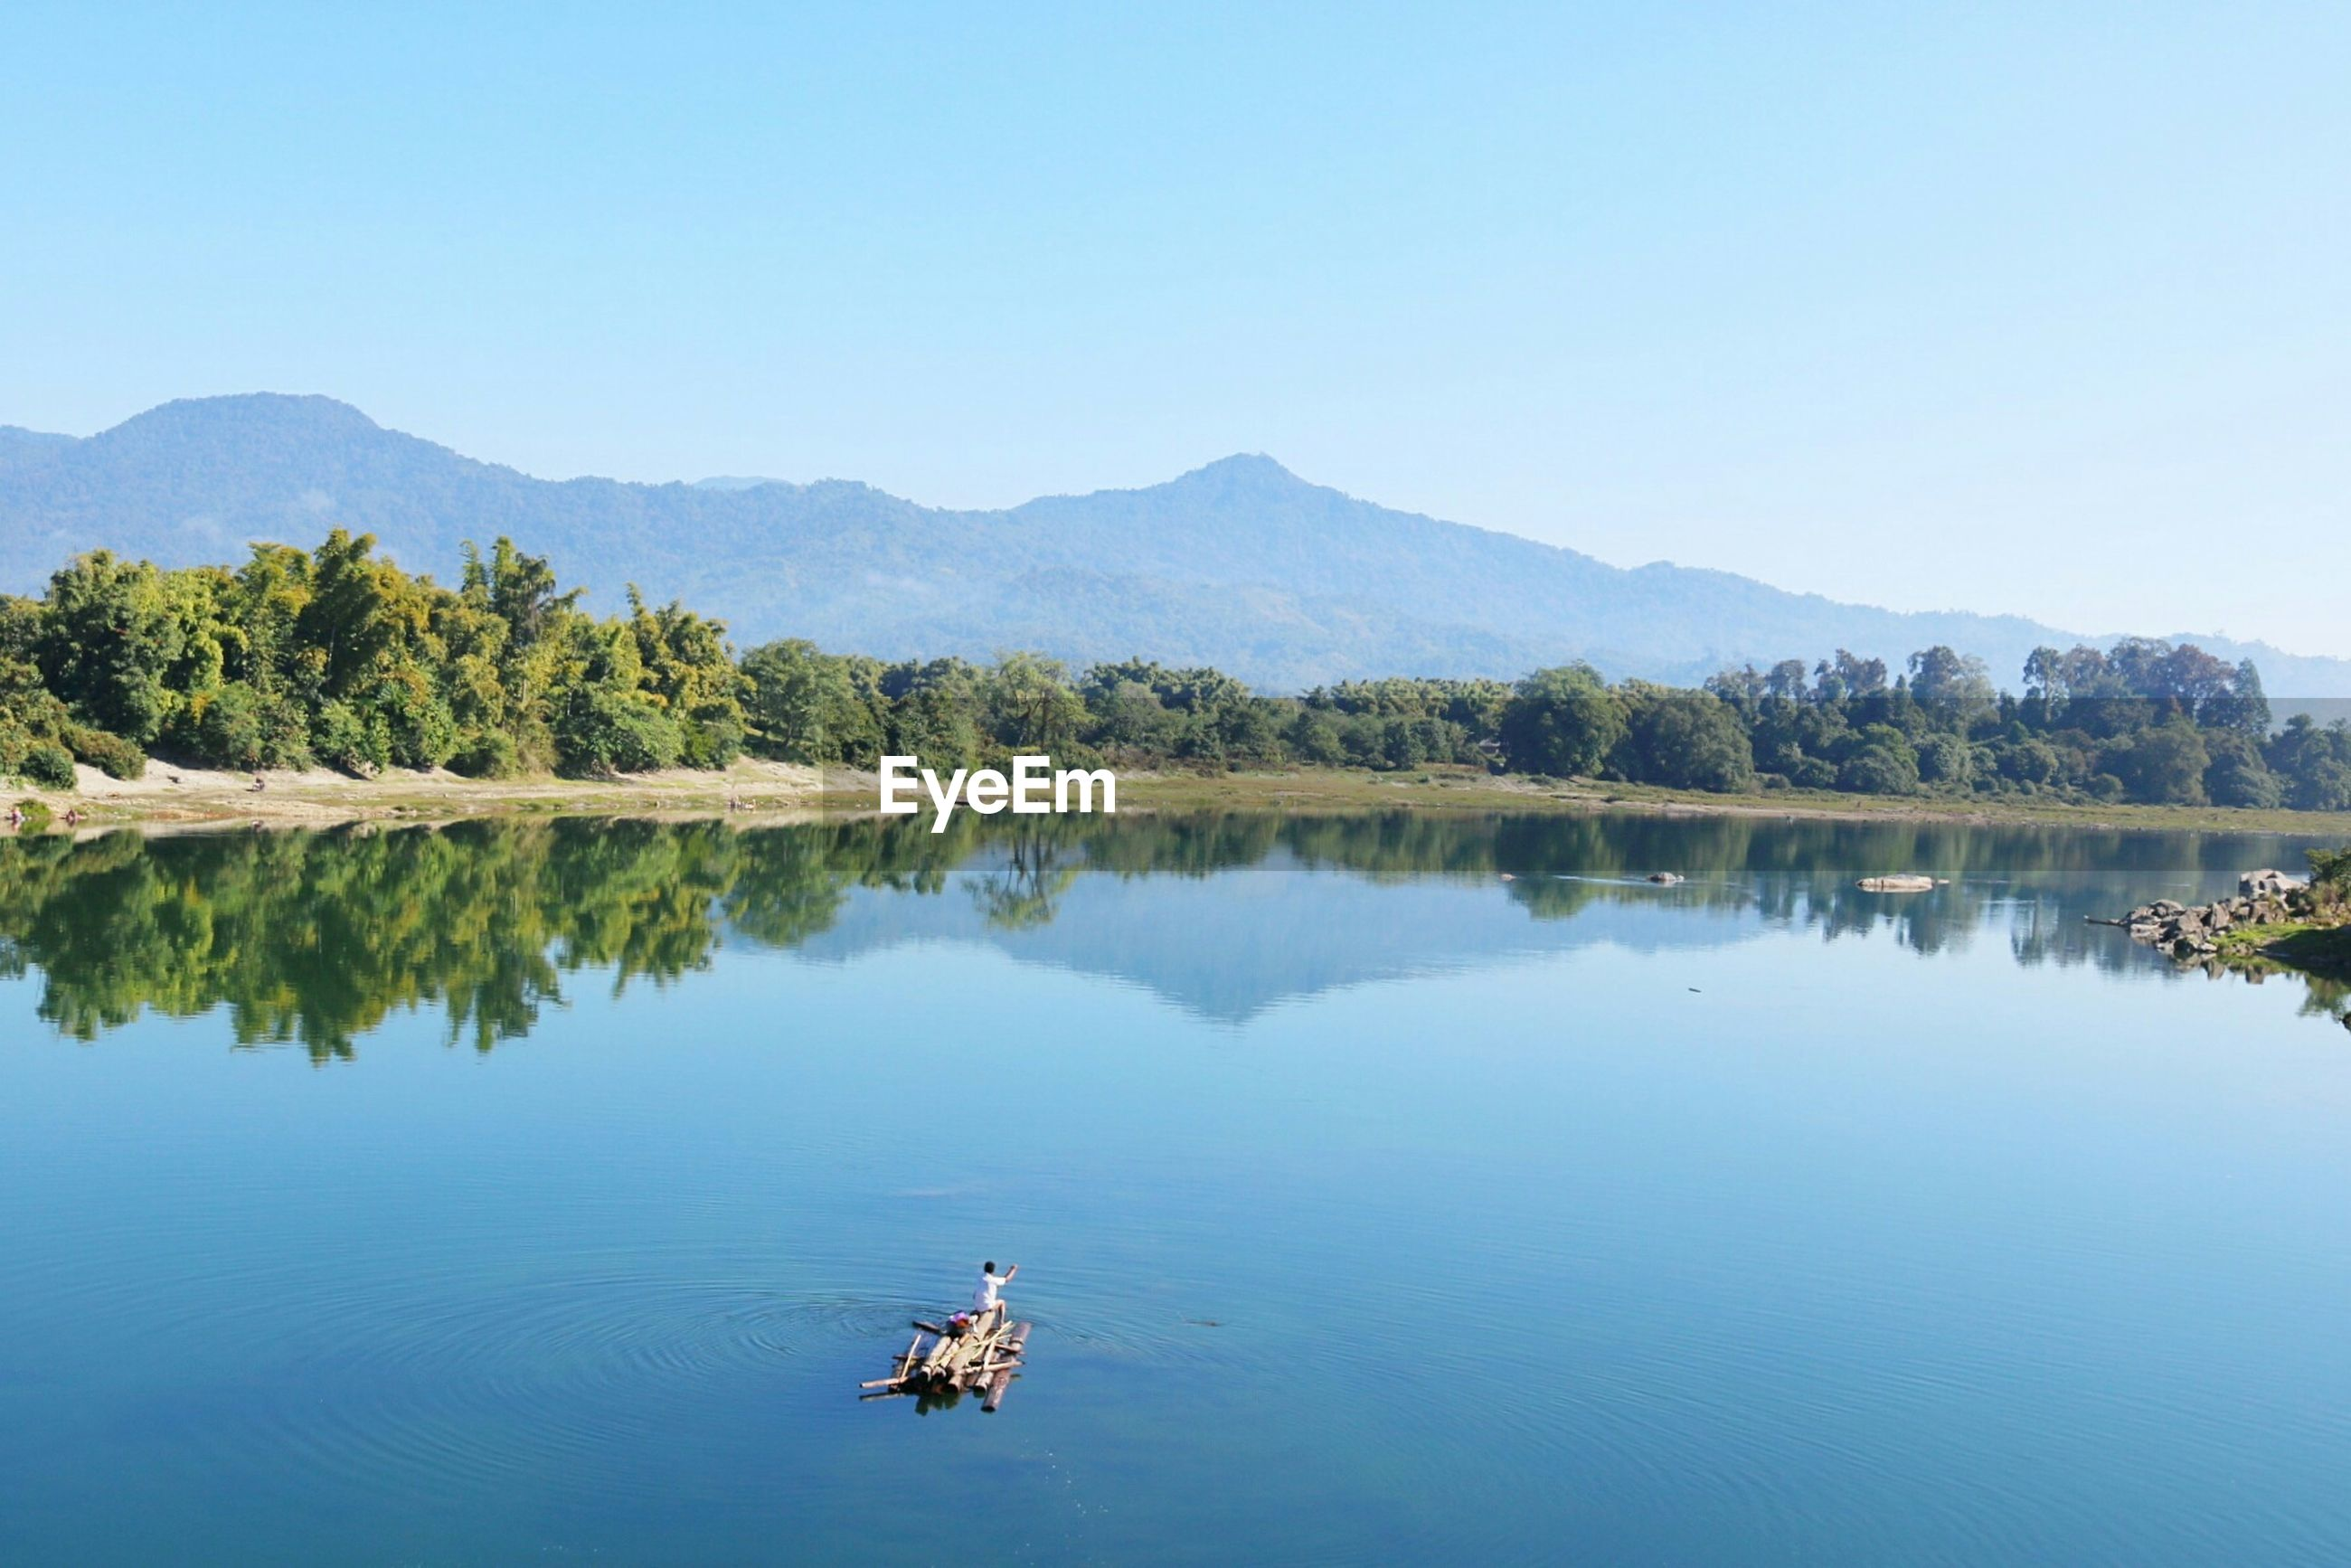 reflection, nature, water, lake, scenics, beauty in nature, mountain, tranquil scene, animal themes, tree, day, sky, tranquility, outdoors, no people, clear sky, animals in the wild, one animal, bird, water bird